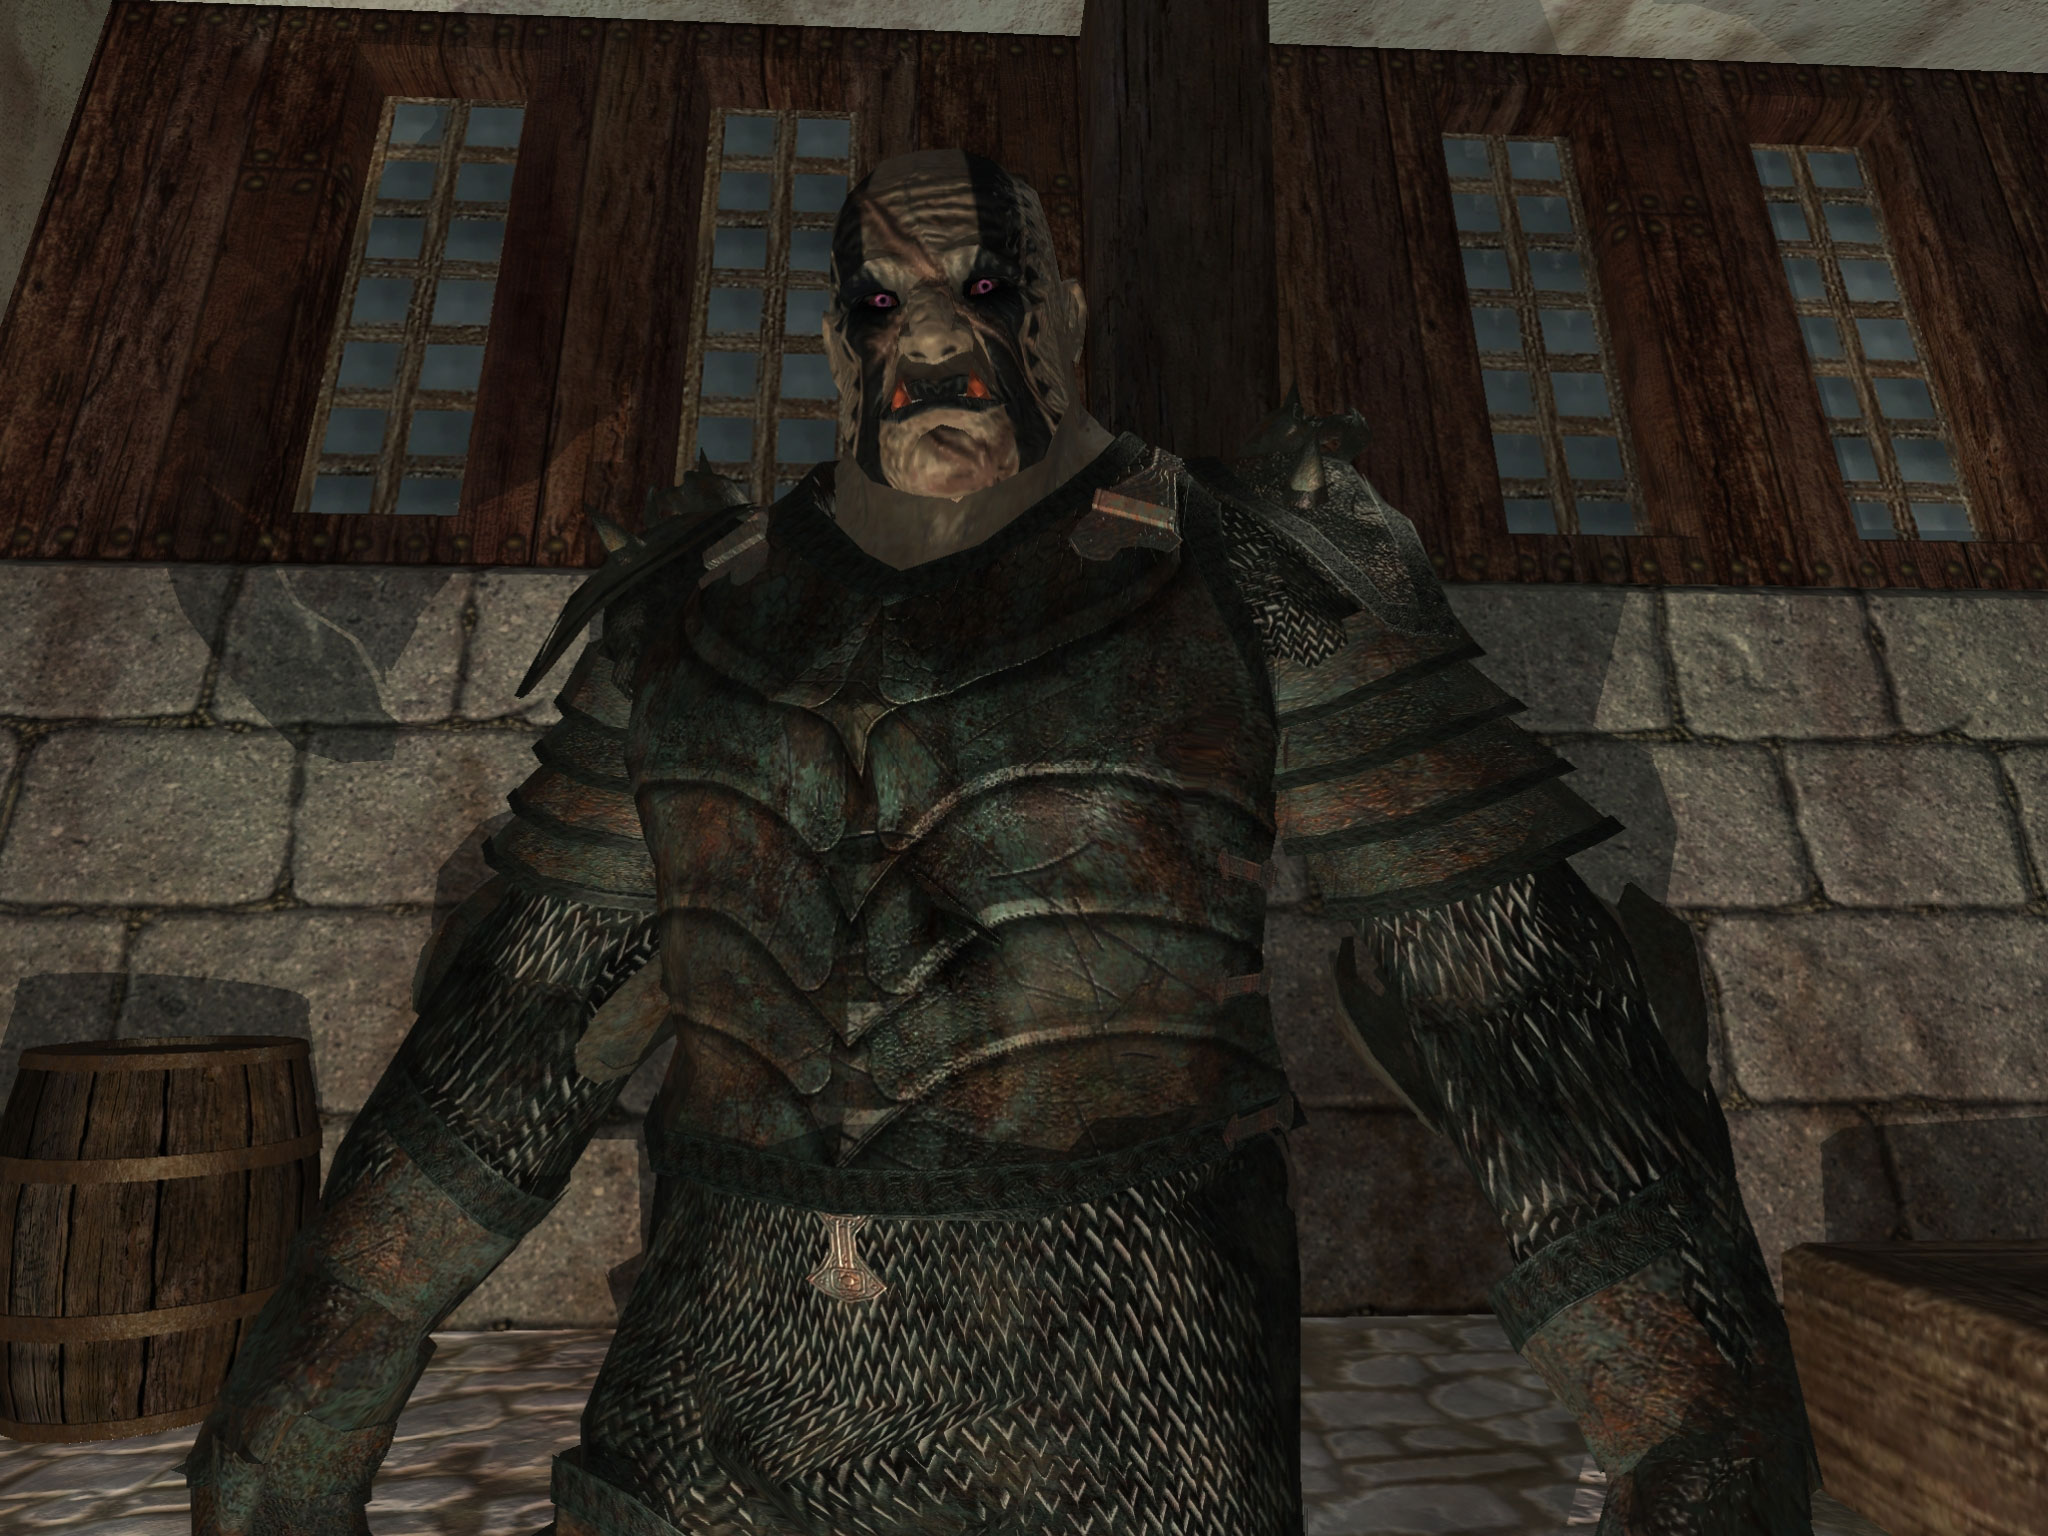 Everquest Ogre Images - Reverse Search